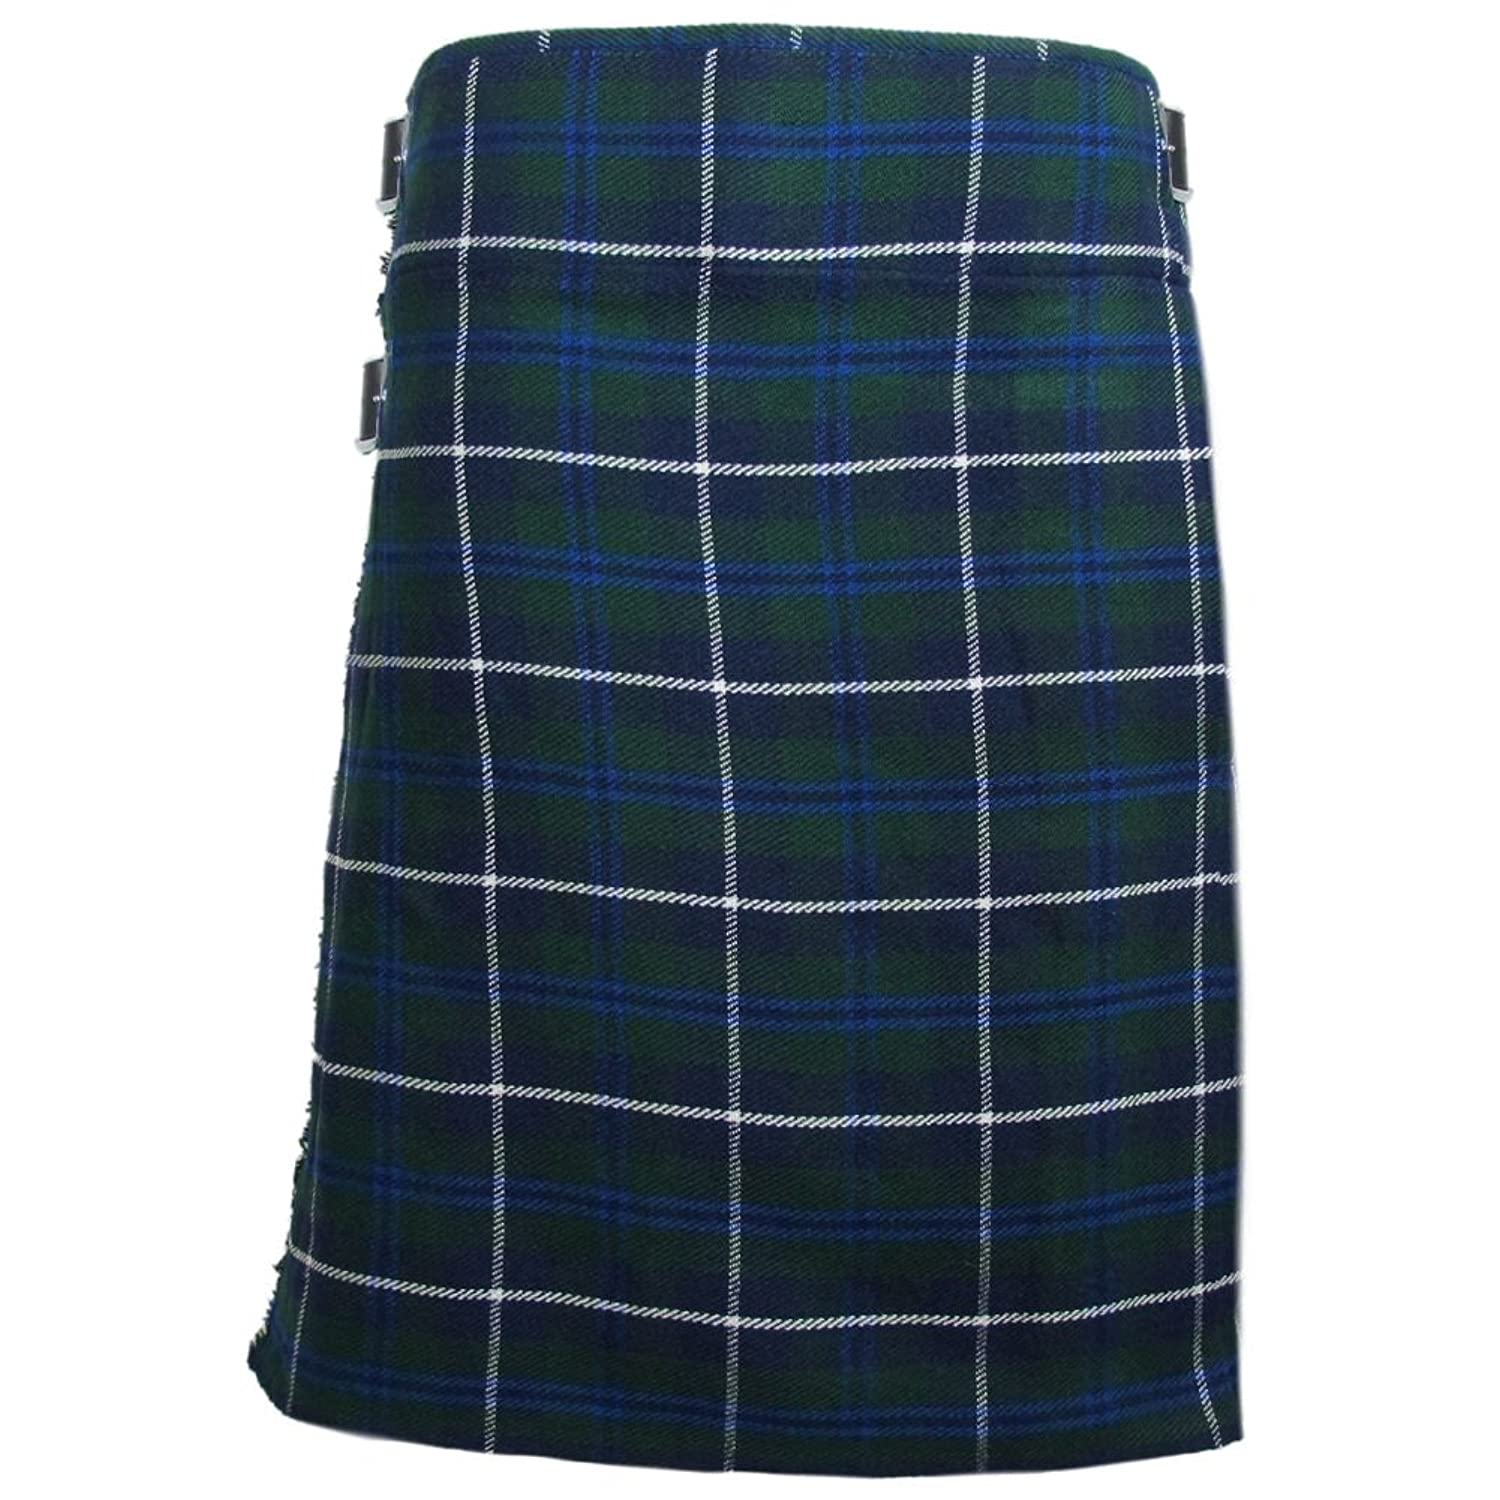 Tartanista - Scottish Highland Kilt - 4,6 m/284 g (5 Yard/10 oz) - Douglas-Blau - 76-137 cm (UK30-54)